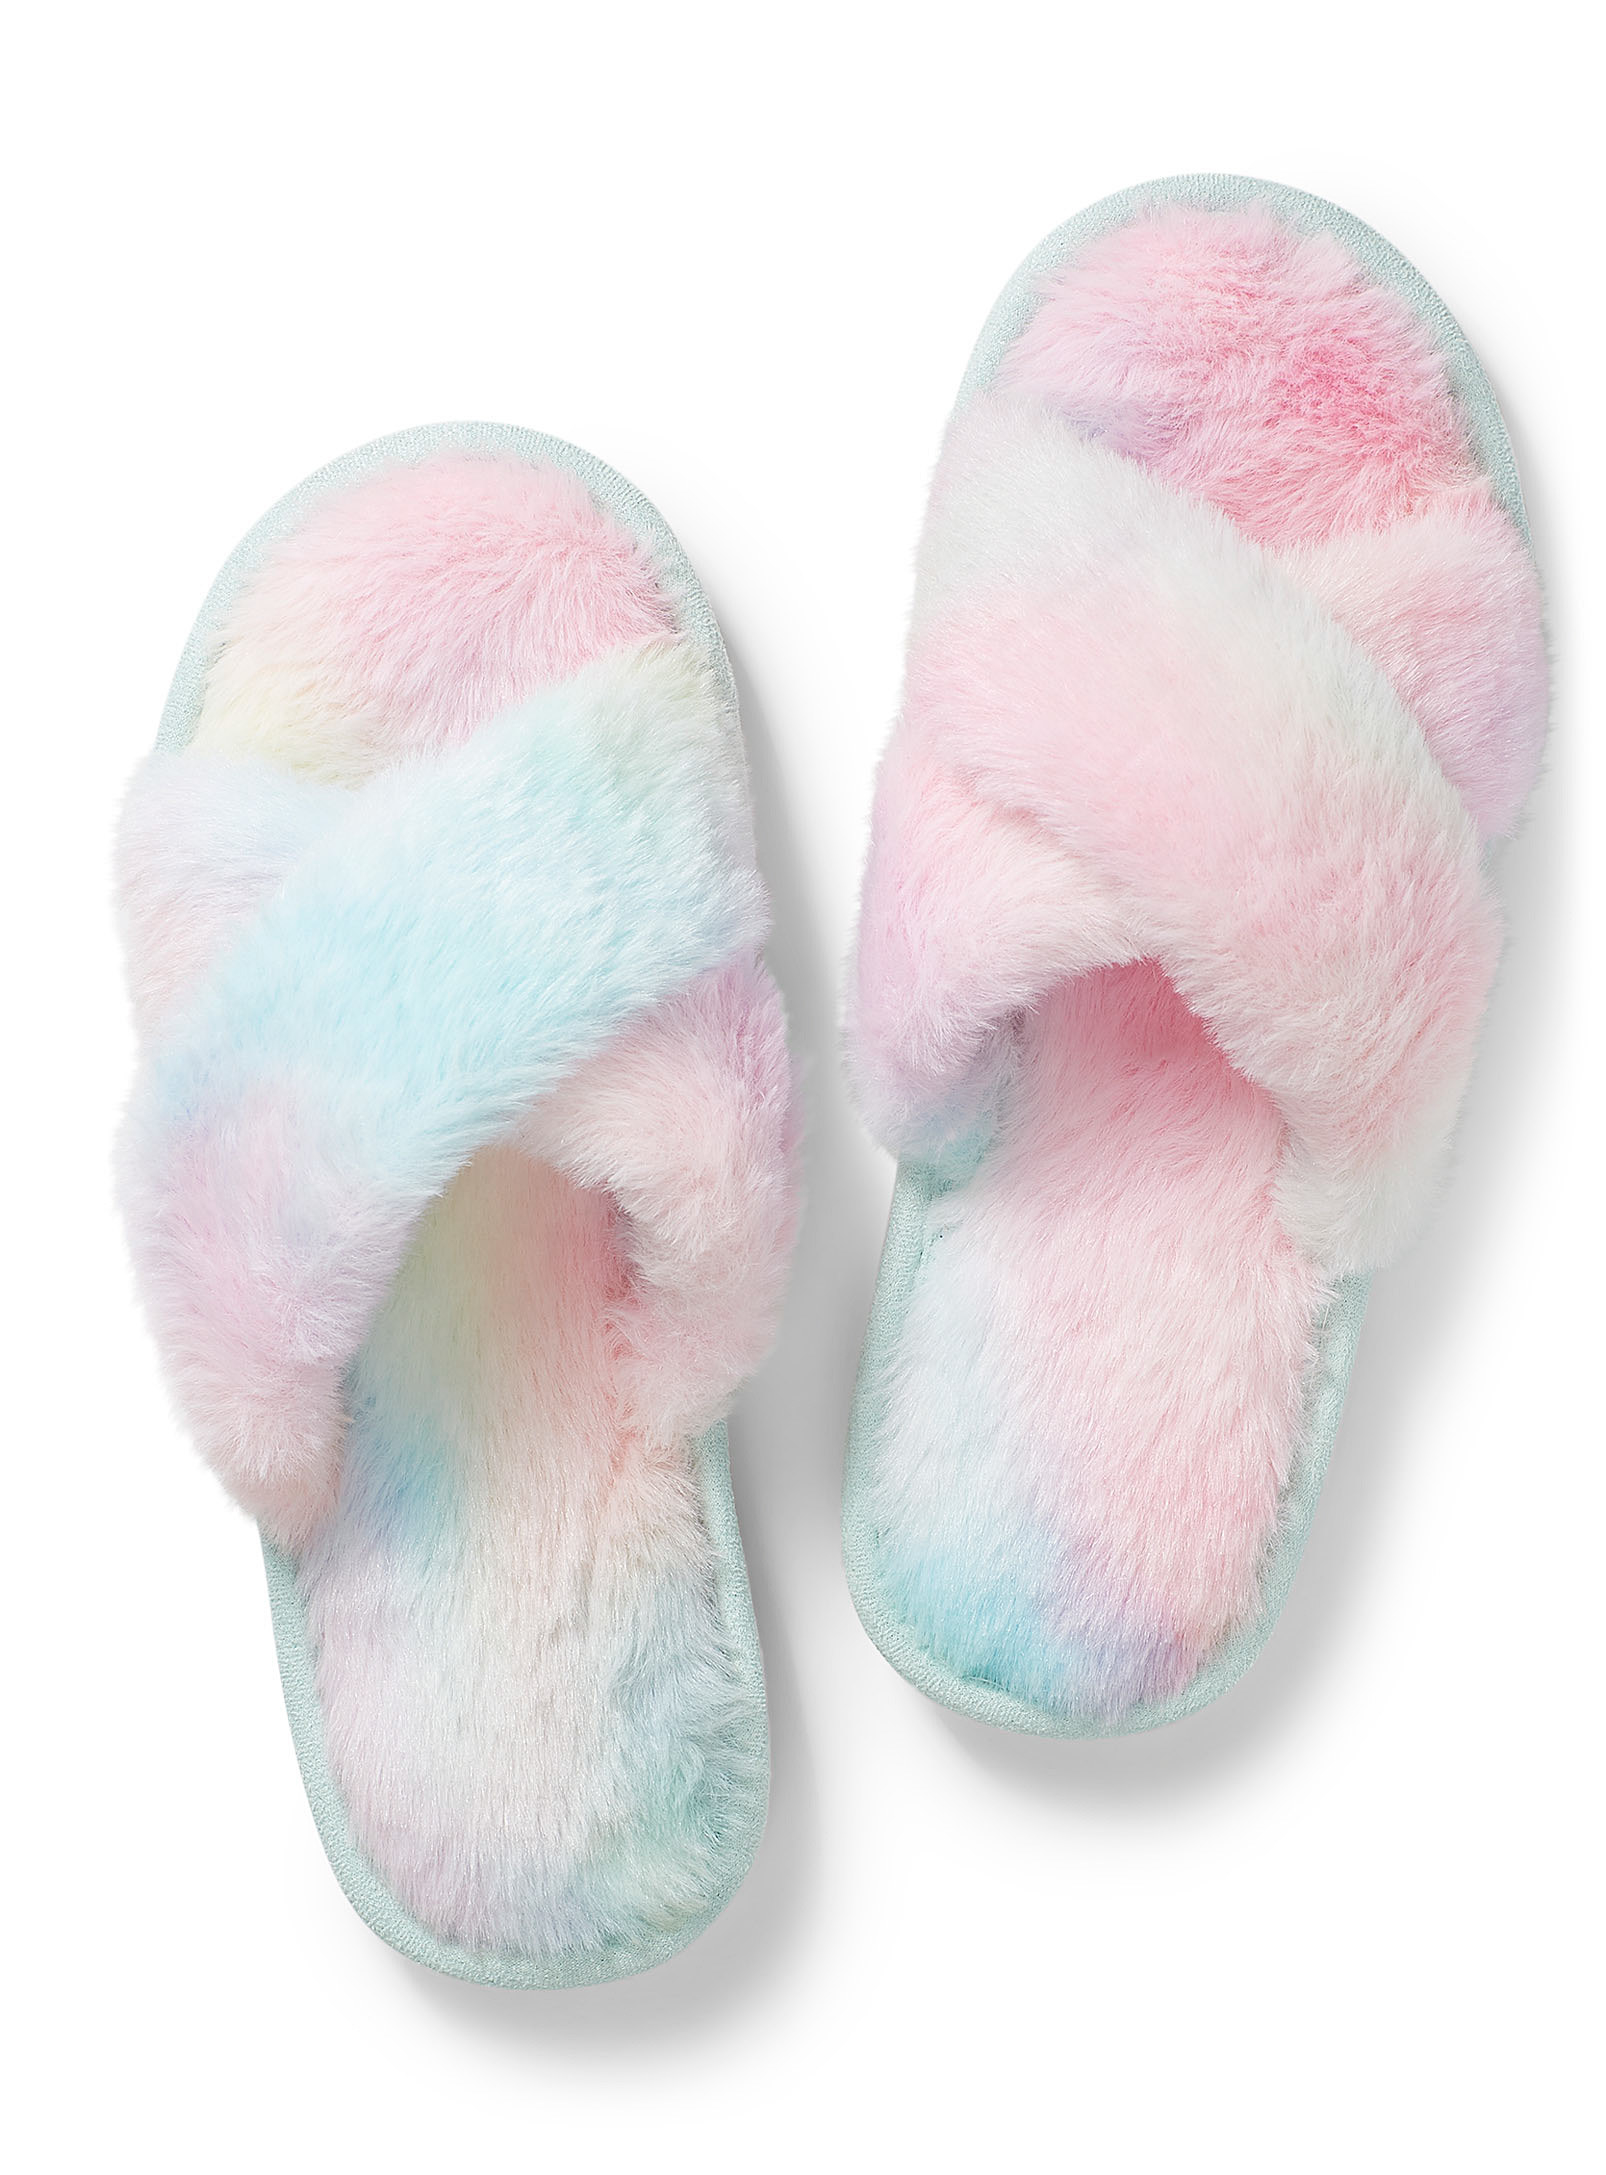 A pair of fuzzy slippers on a plain background